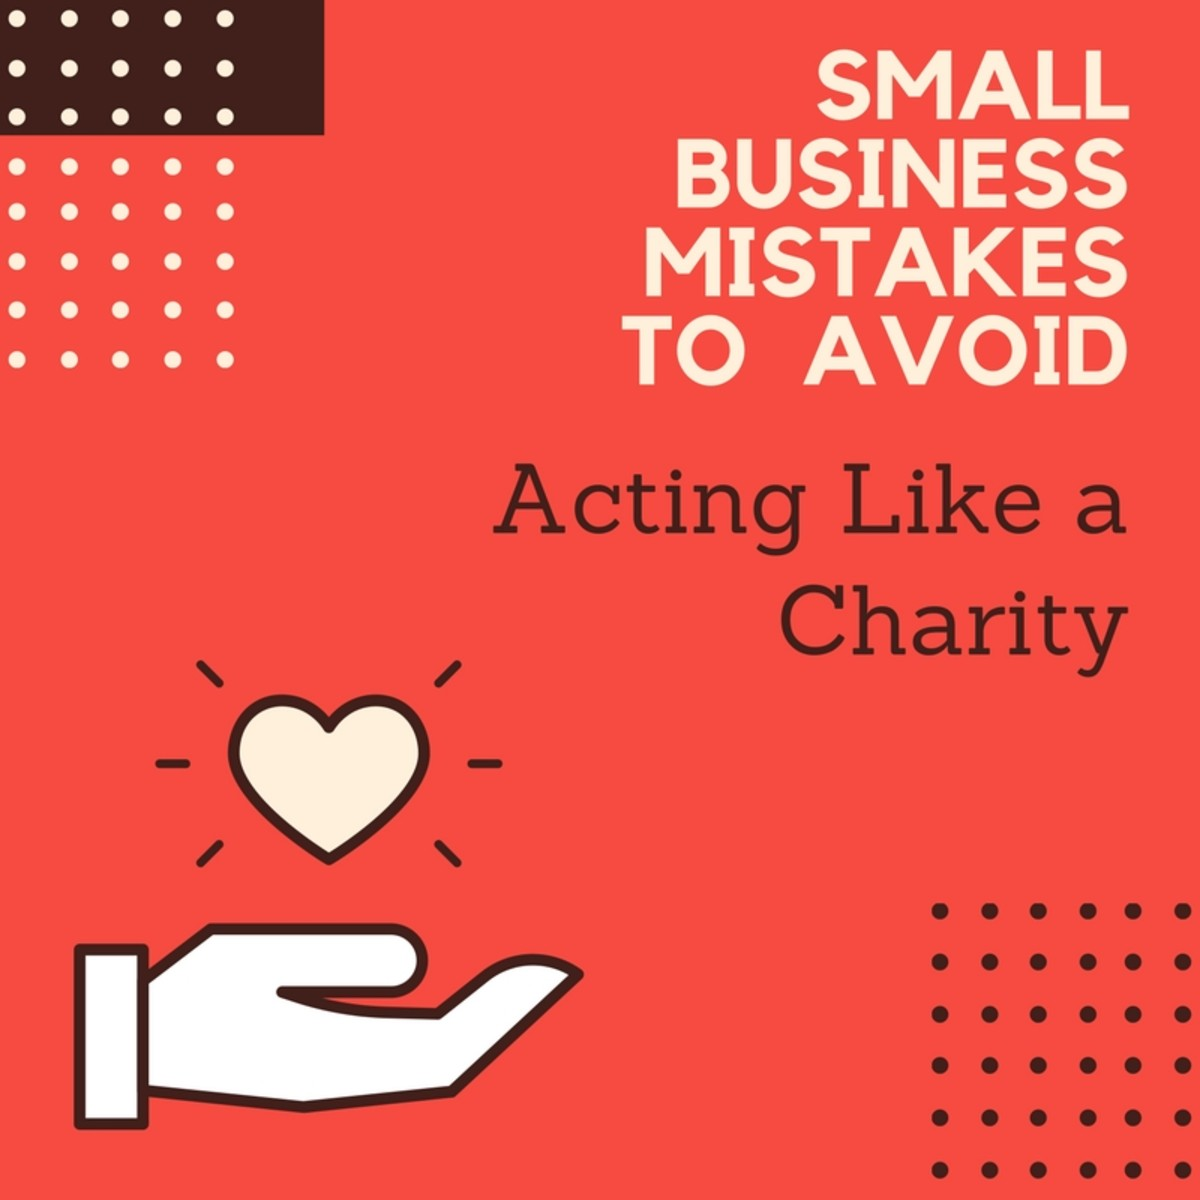 Learn how to avoid these simple mistakes!